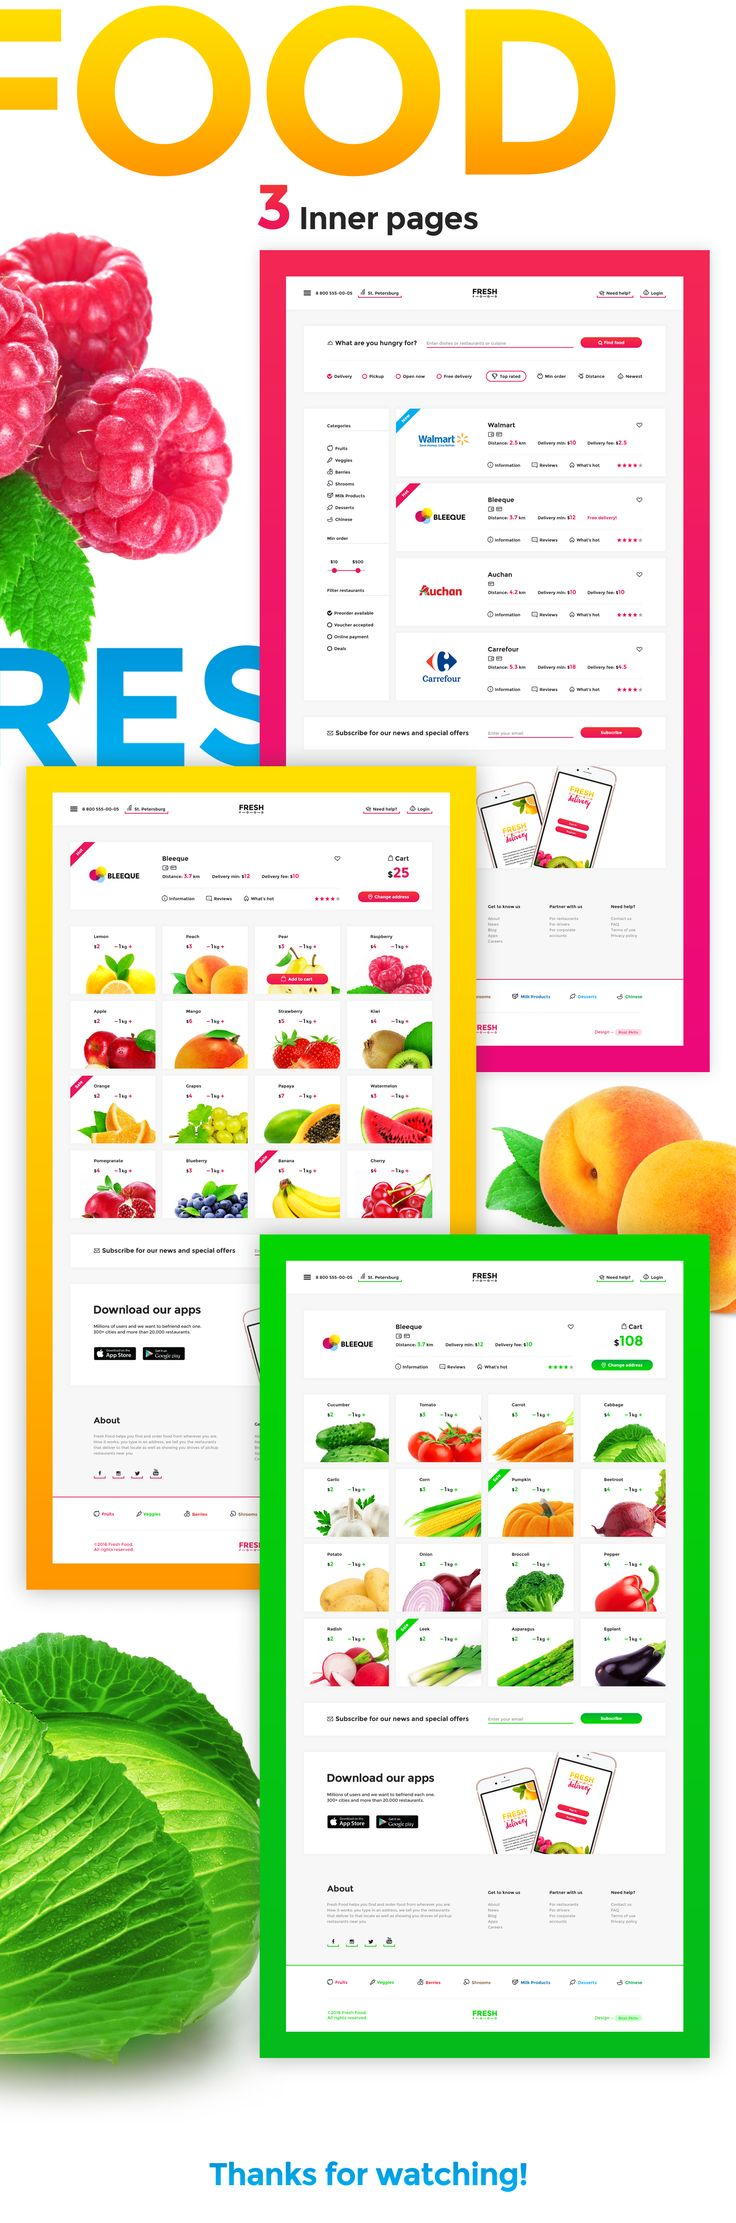 Fresh Food Delivery helps you find and order healthy food from wherever you are.